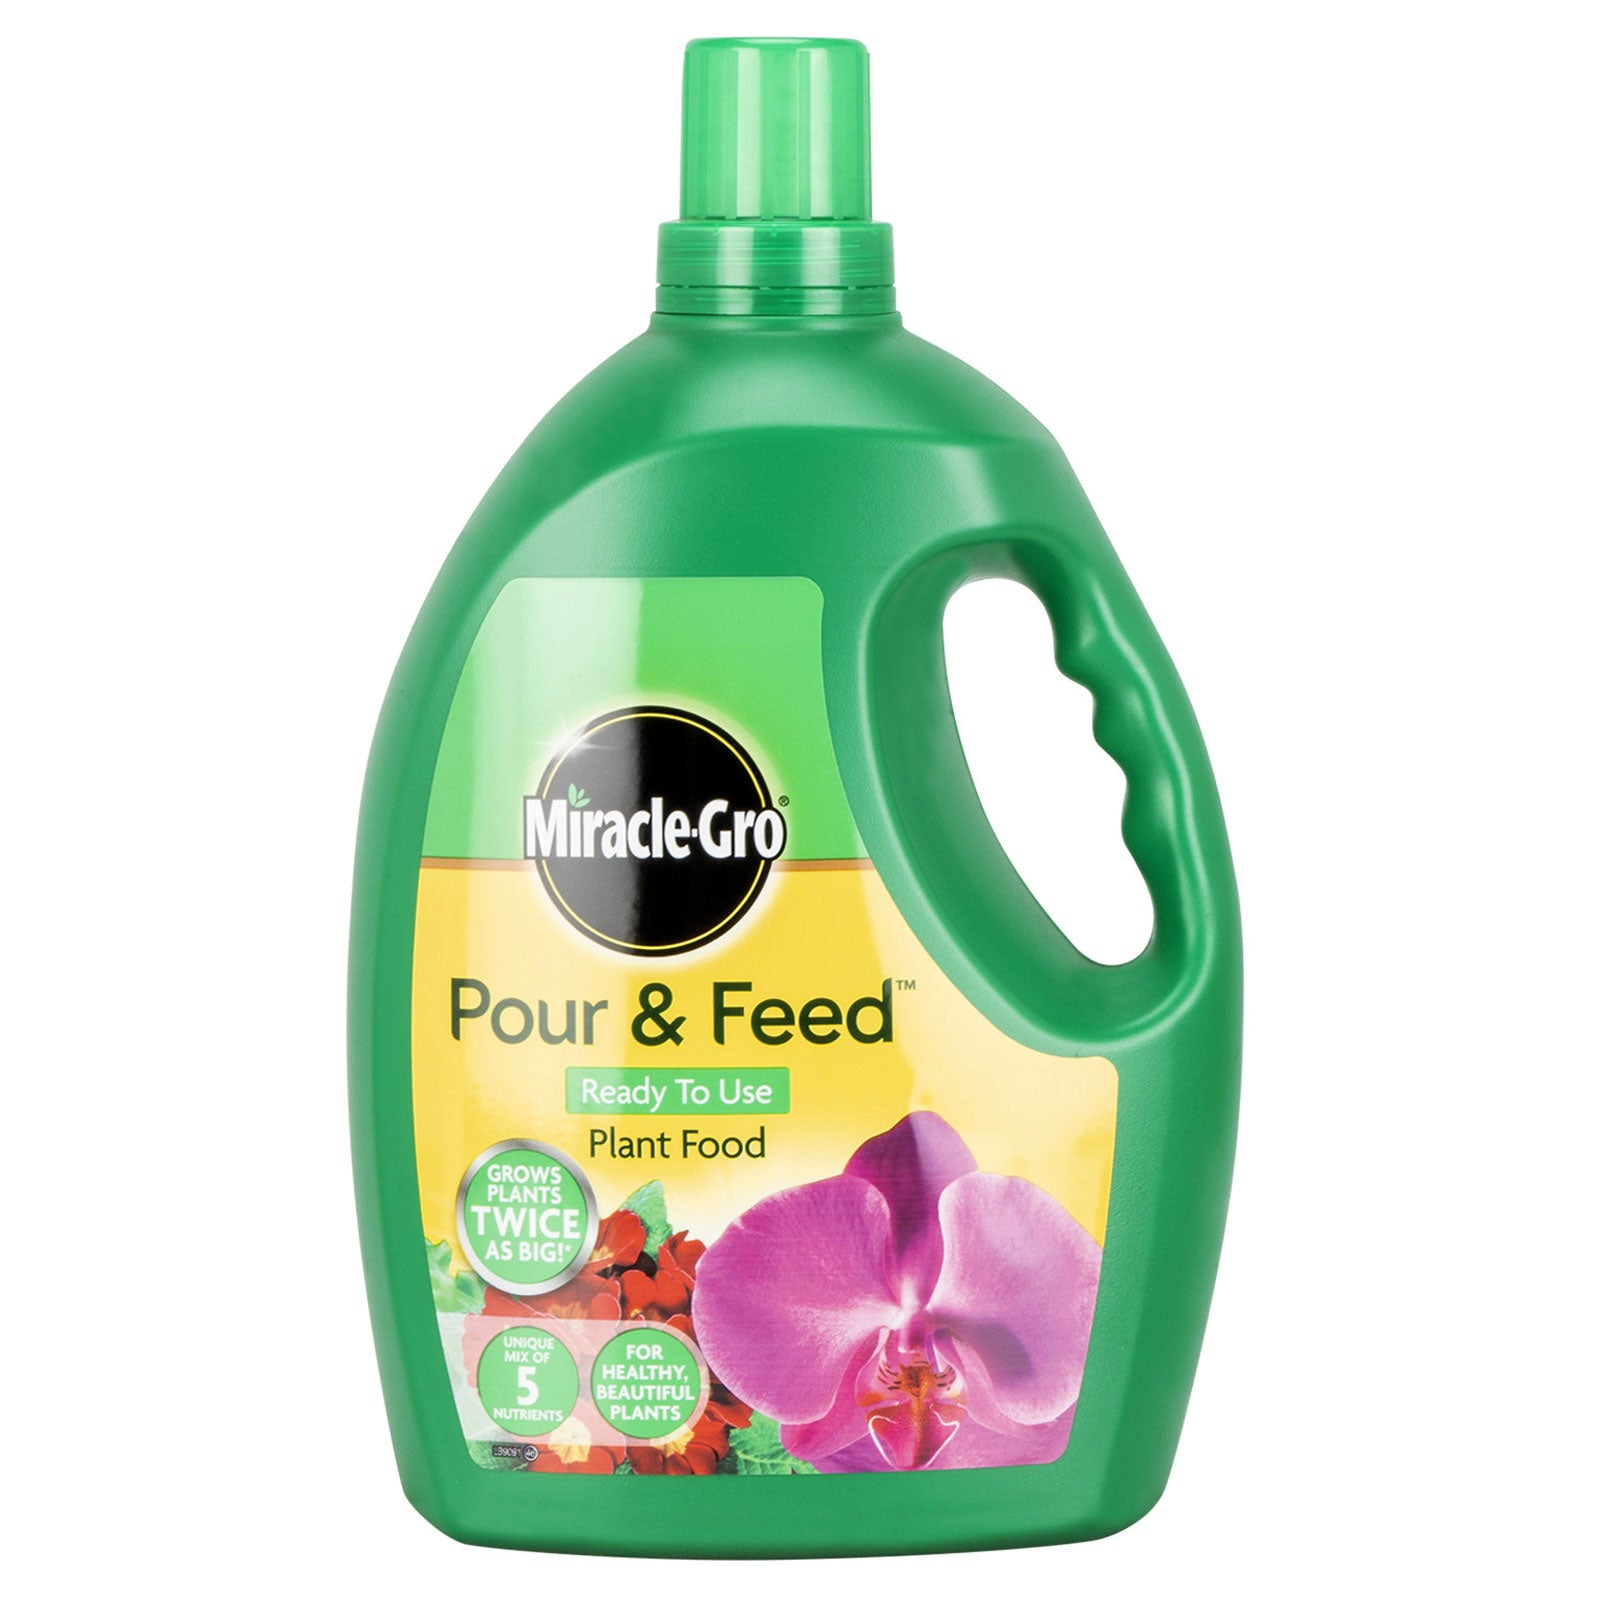 Miracle-Gro Pour & Feed Ready To Use Plant Food 3L Produce Bigger Plants  Blooms